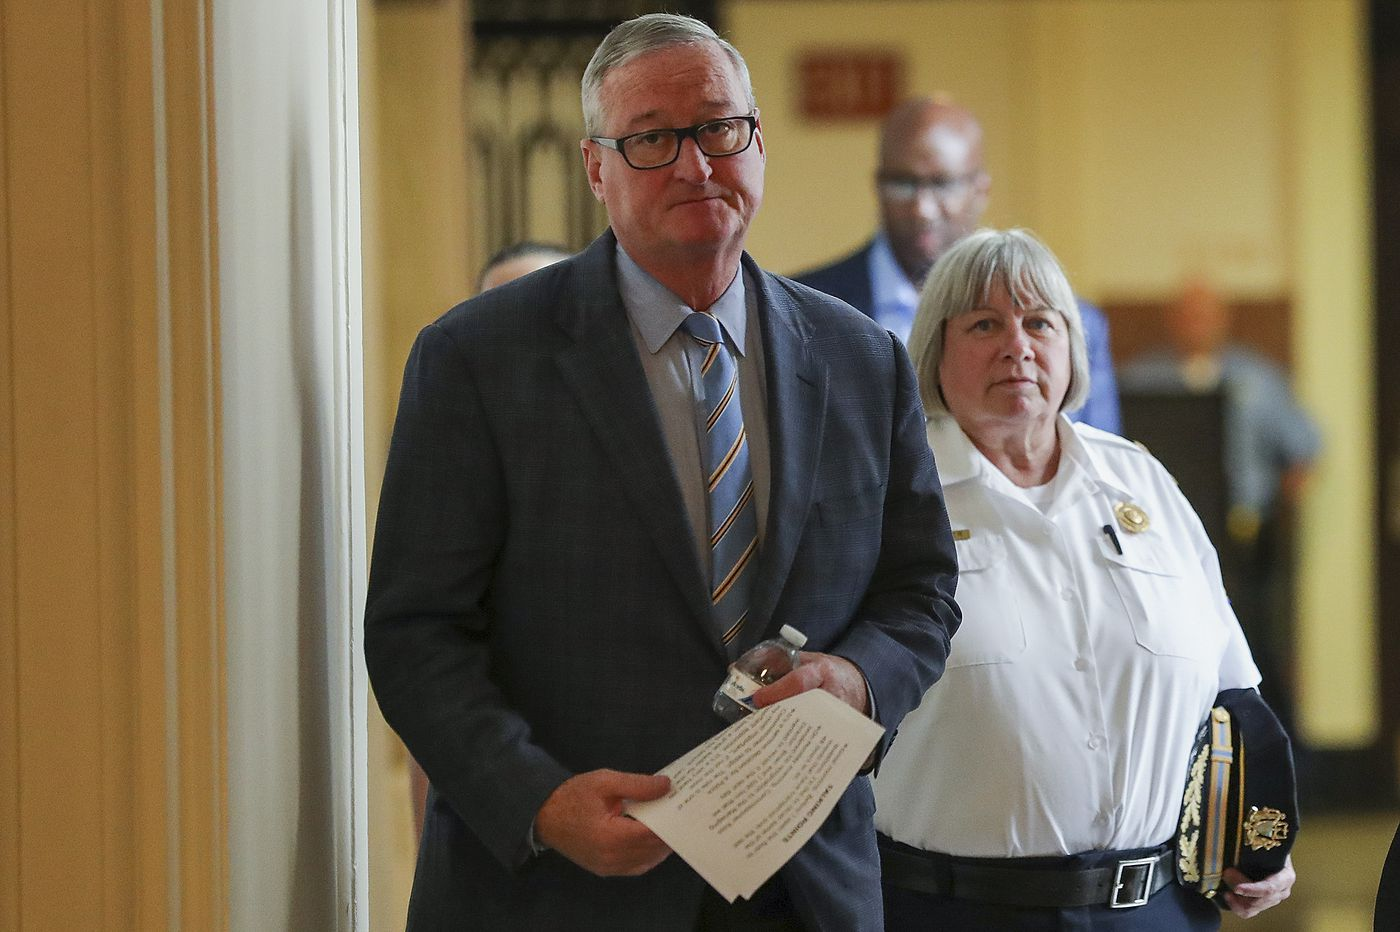 Philly Mayor Jim Kenney hopes to pick permanent police commissioner by end of 2019